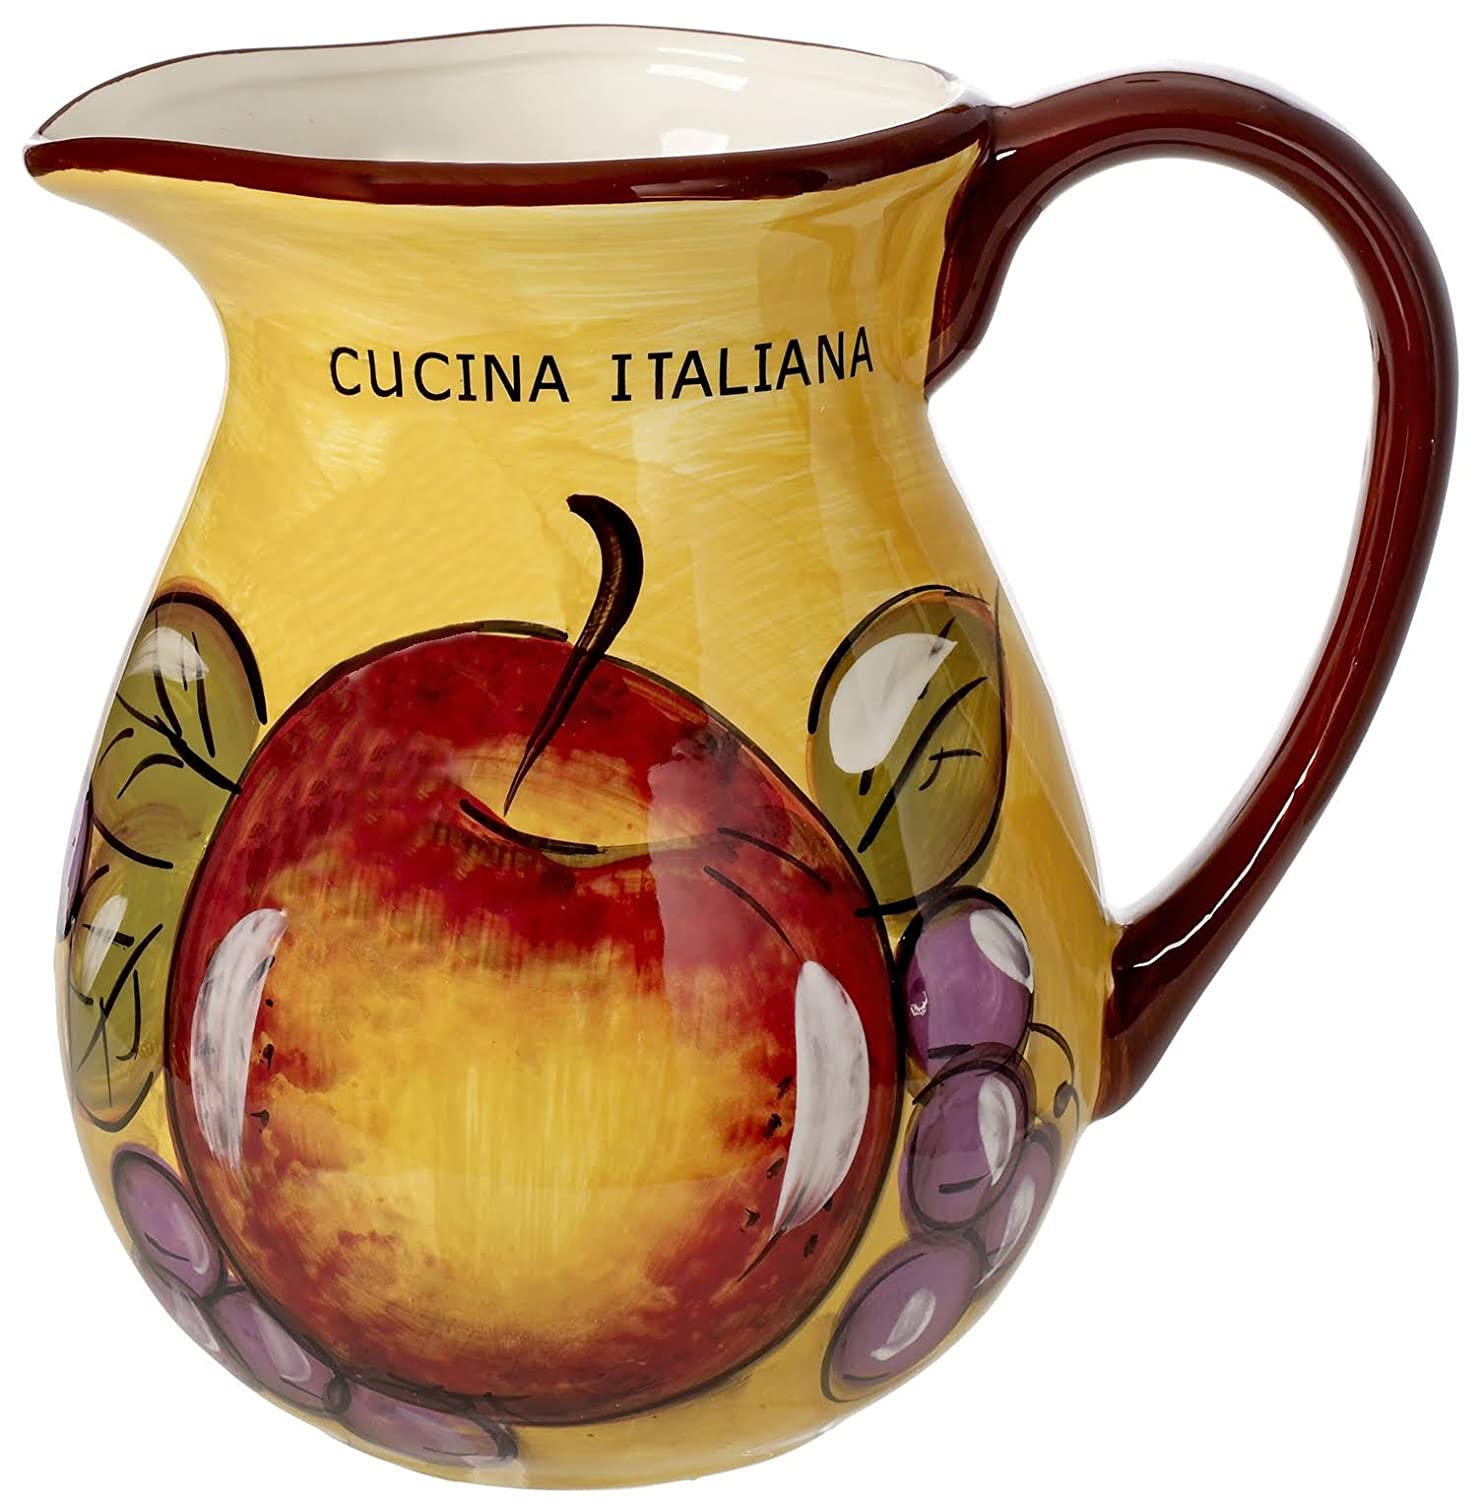 Amazon.com | Original Cucina Italiana Ceramic Sunflower Decor 112 oz ...